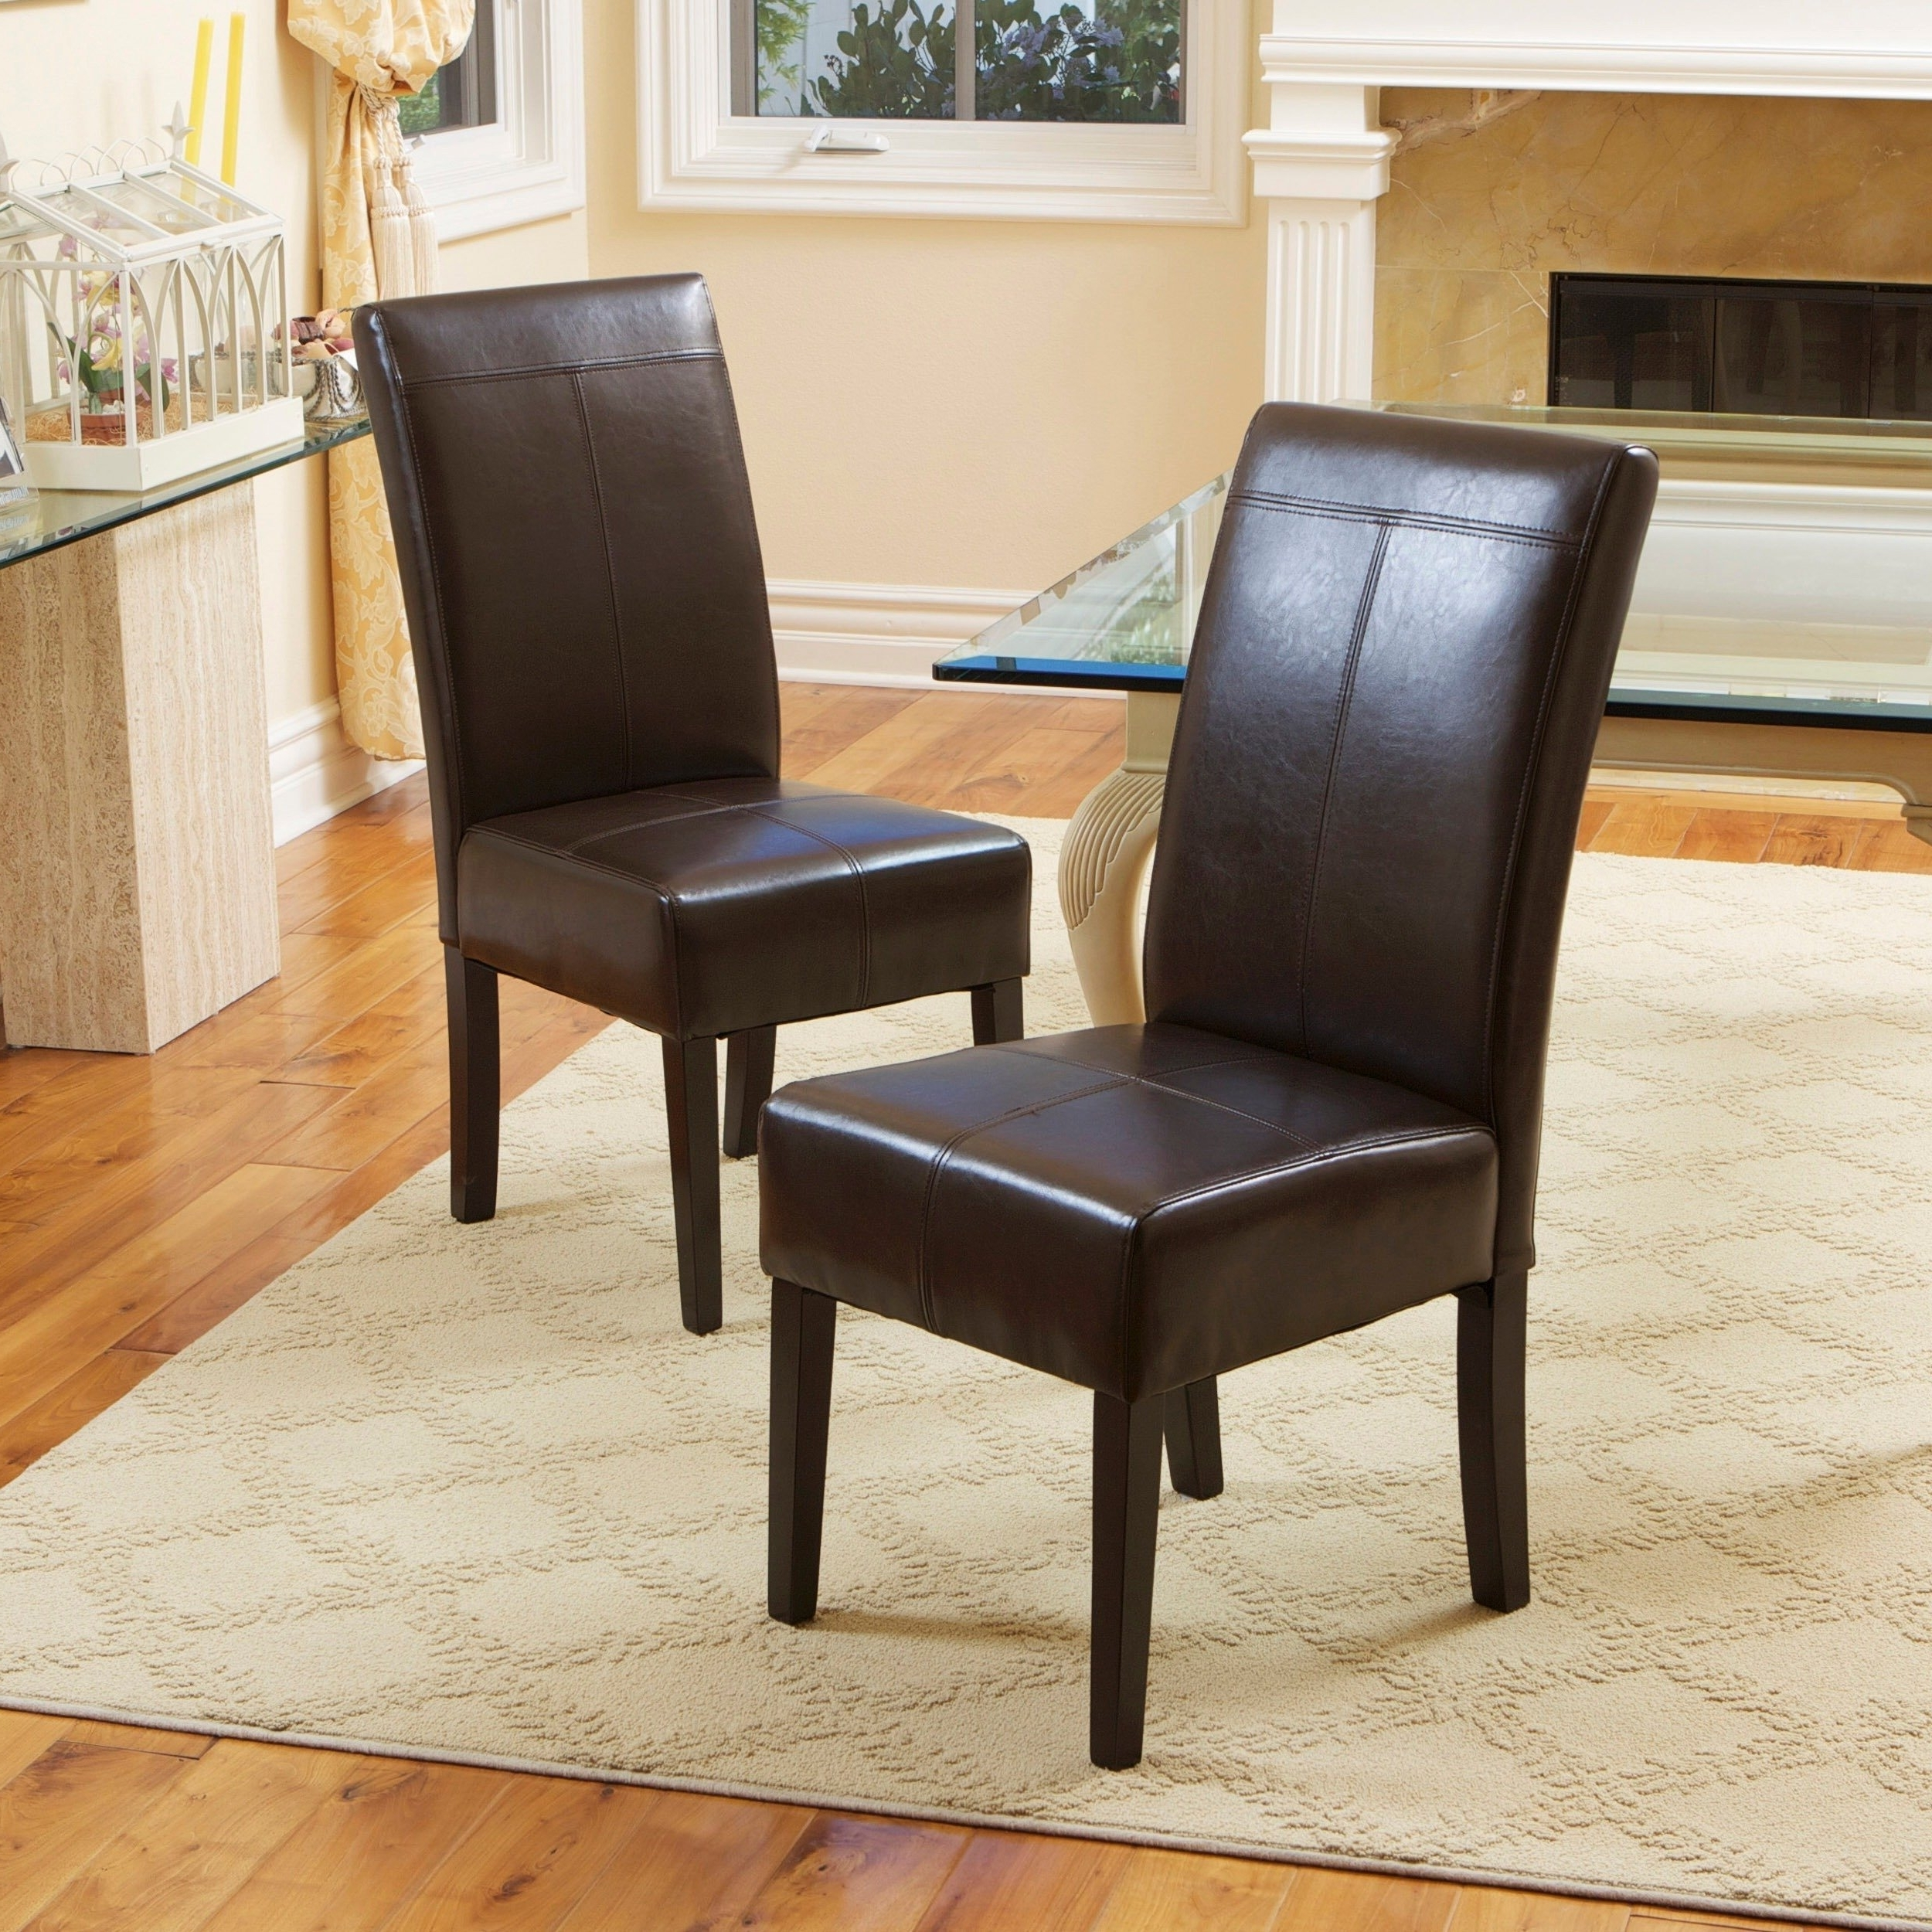 Trendy Brown Leather Dining Chairs Throughout Shop T Stitch Chocolate Brown Leather Dining Chairs (Set Of 2) (View 12 of 25)